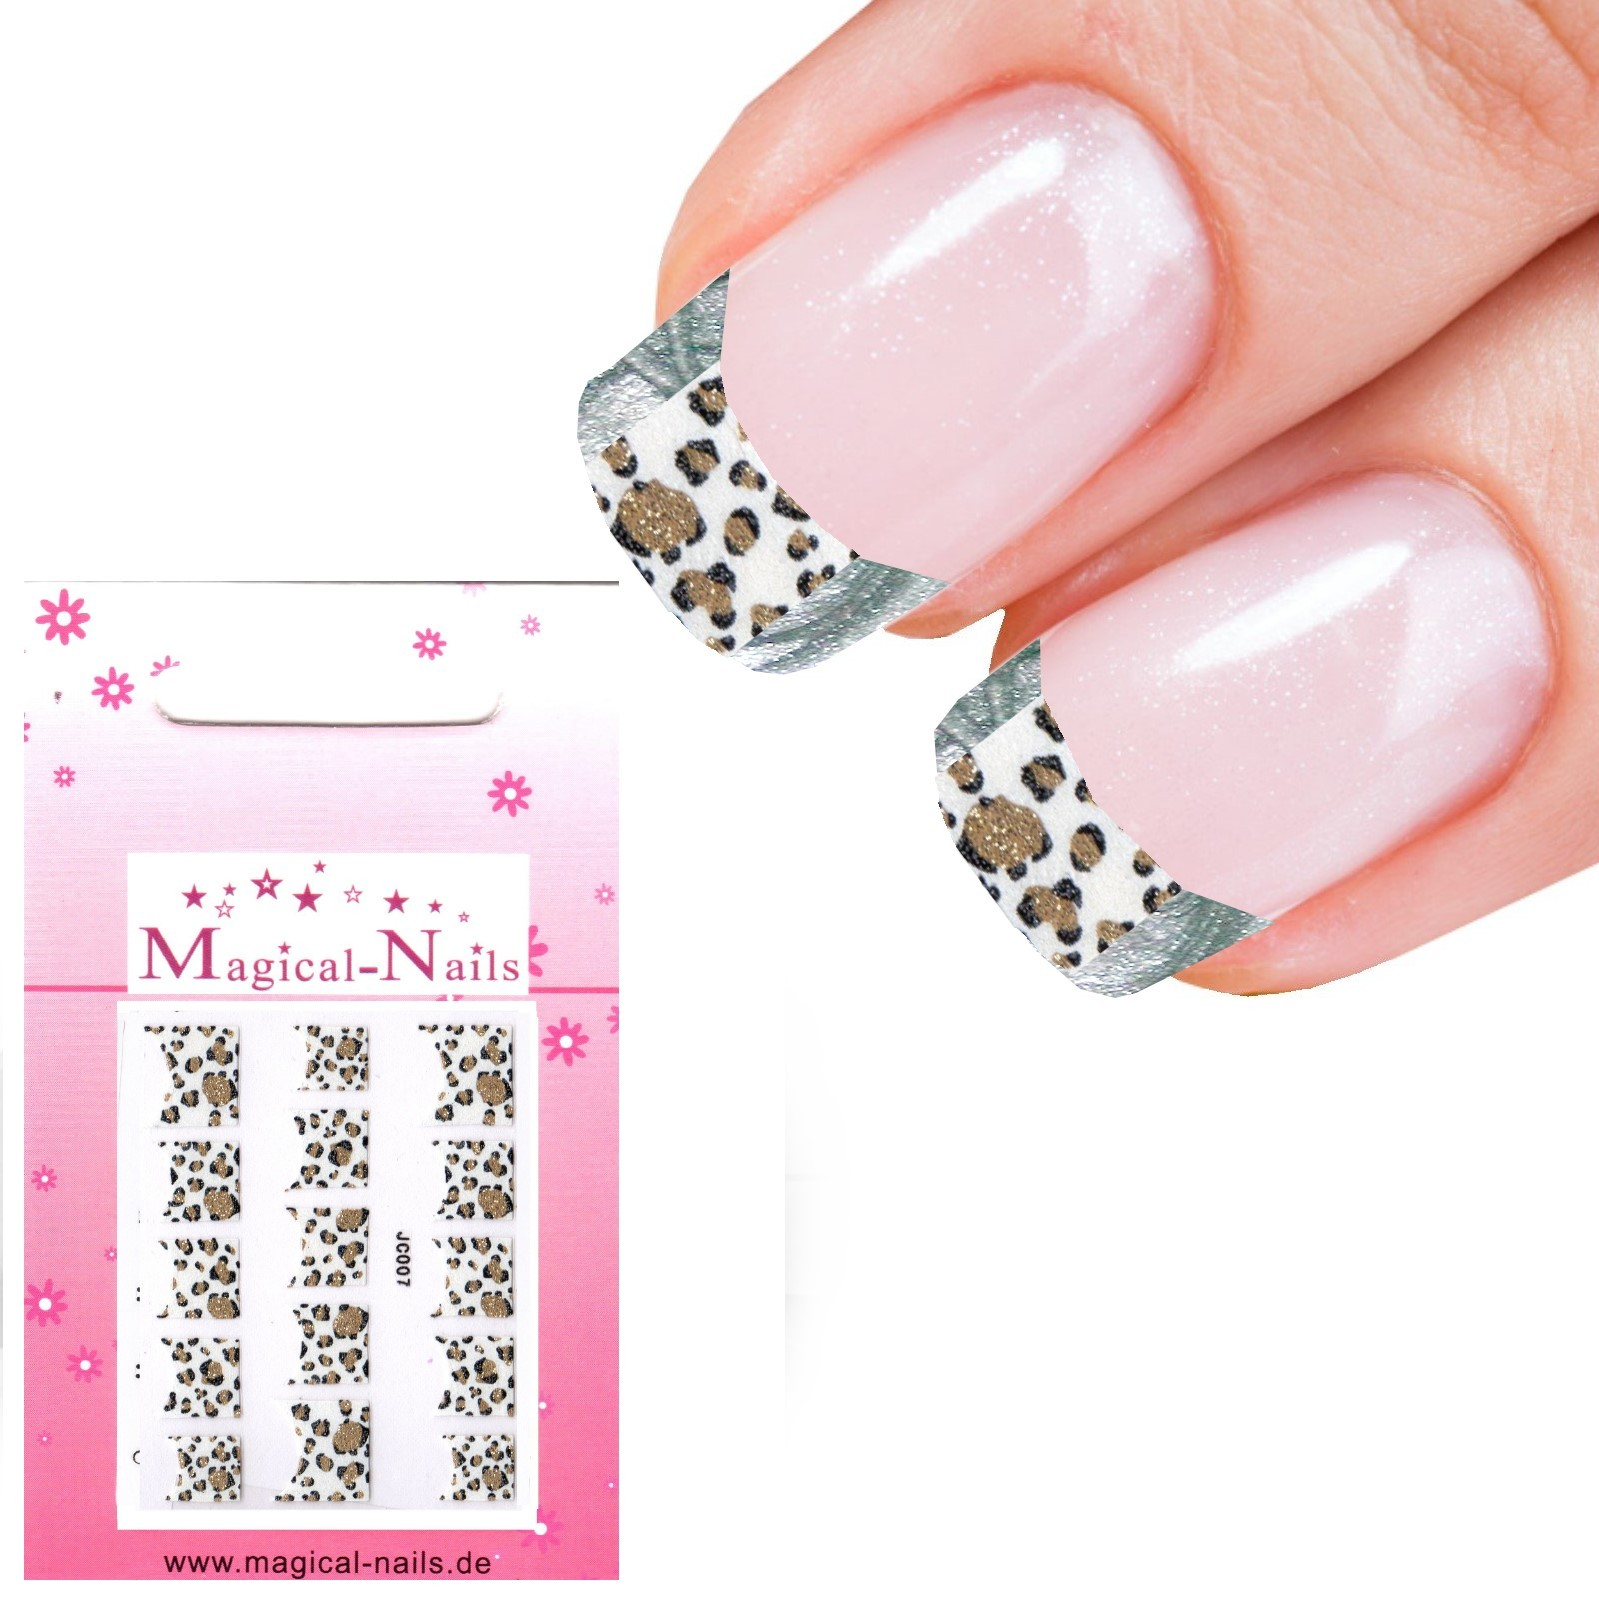 Sticker_JC007_Musternagel_anja_beck_www.magical-nails.de.